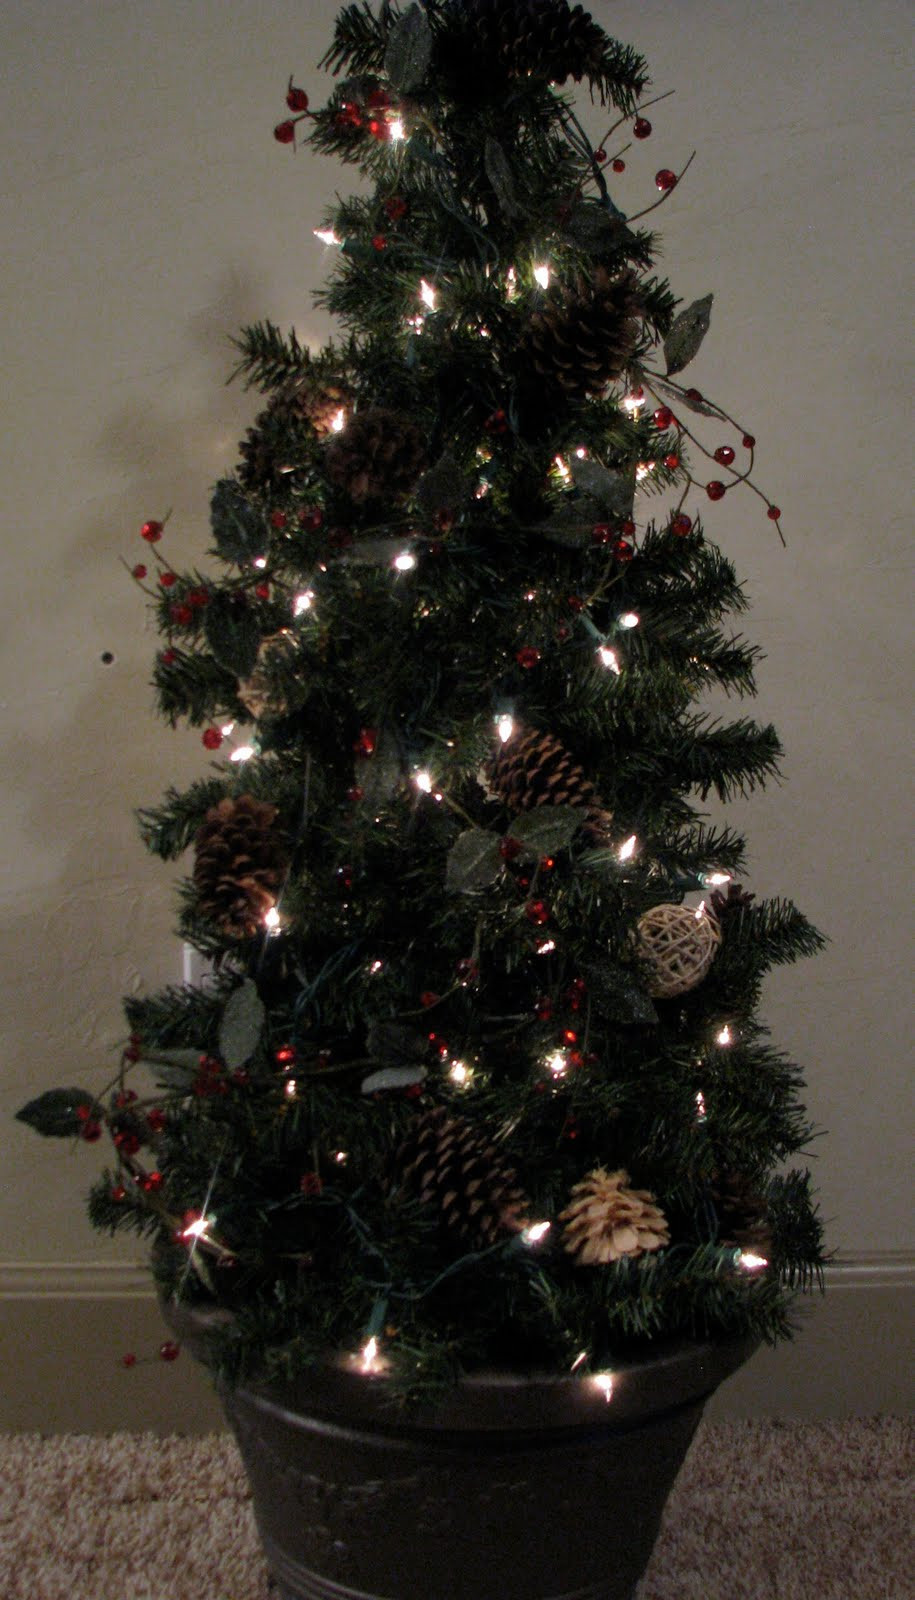 Tomato Cage Christmas Tree  The Gathering Place Design TGPD s Version of the Tomato